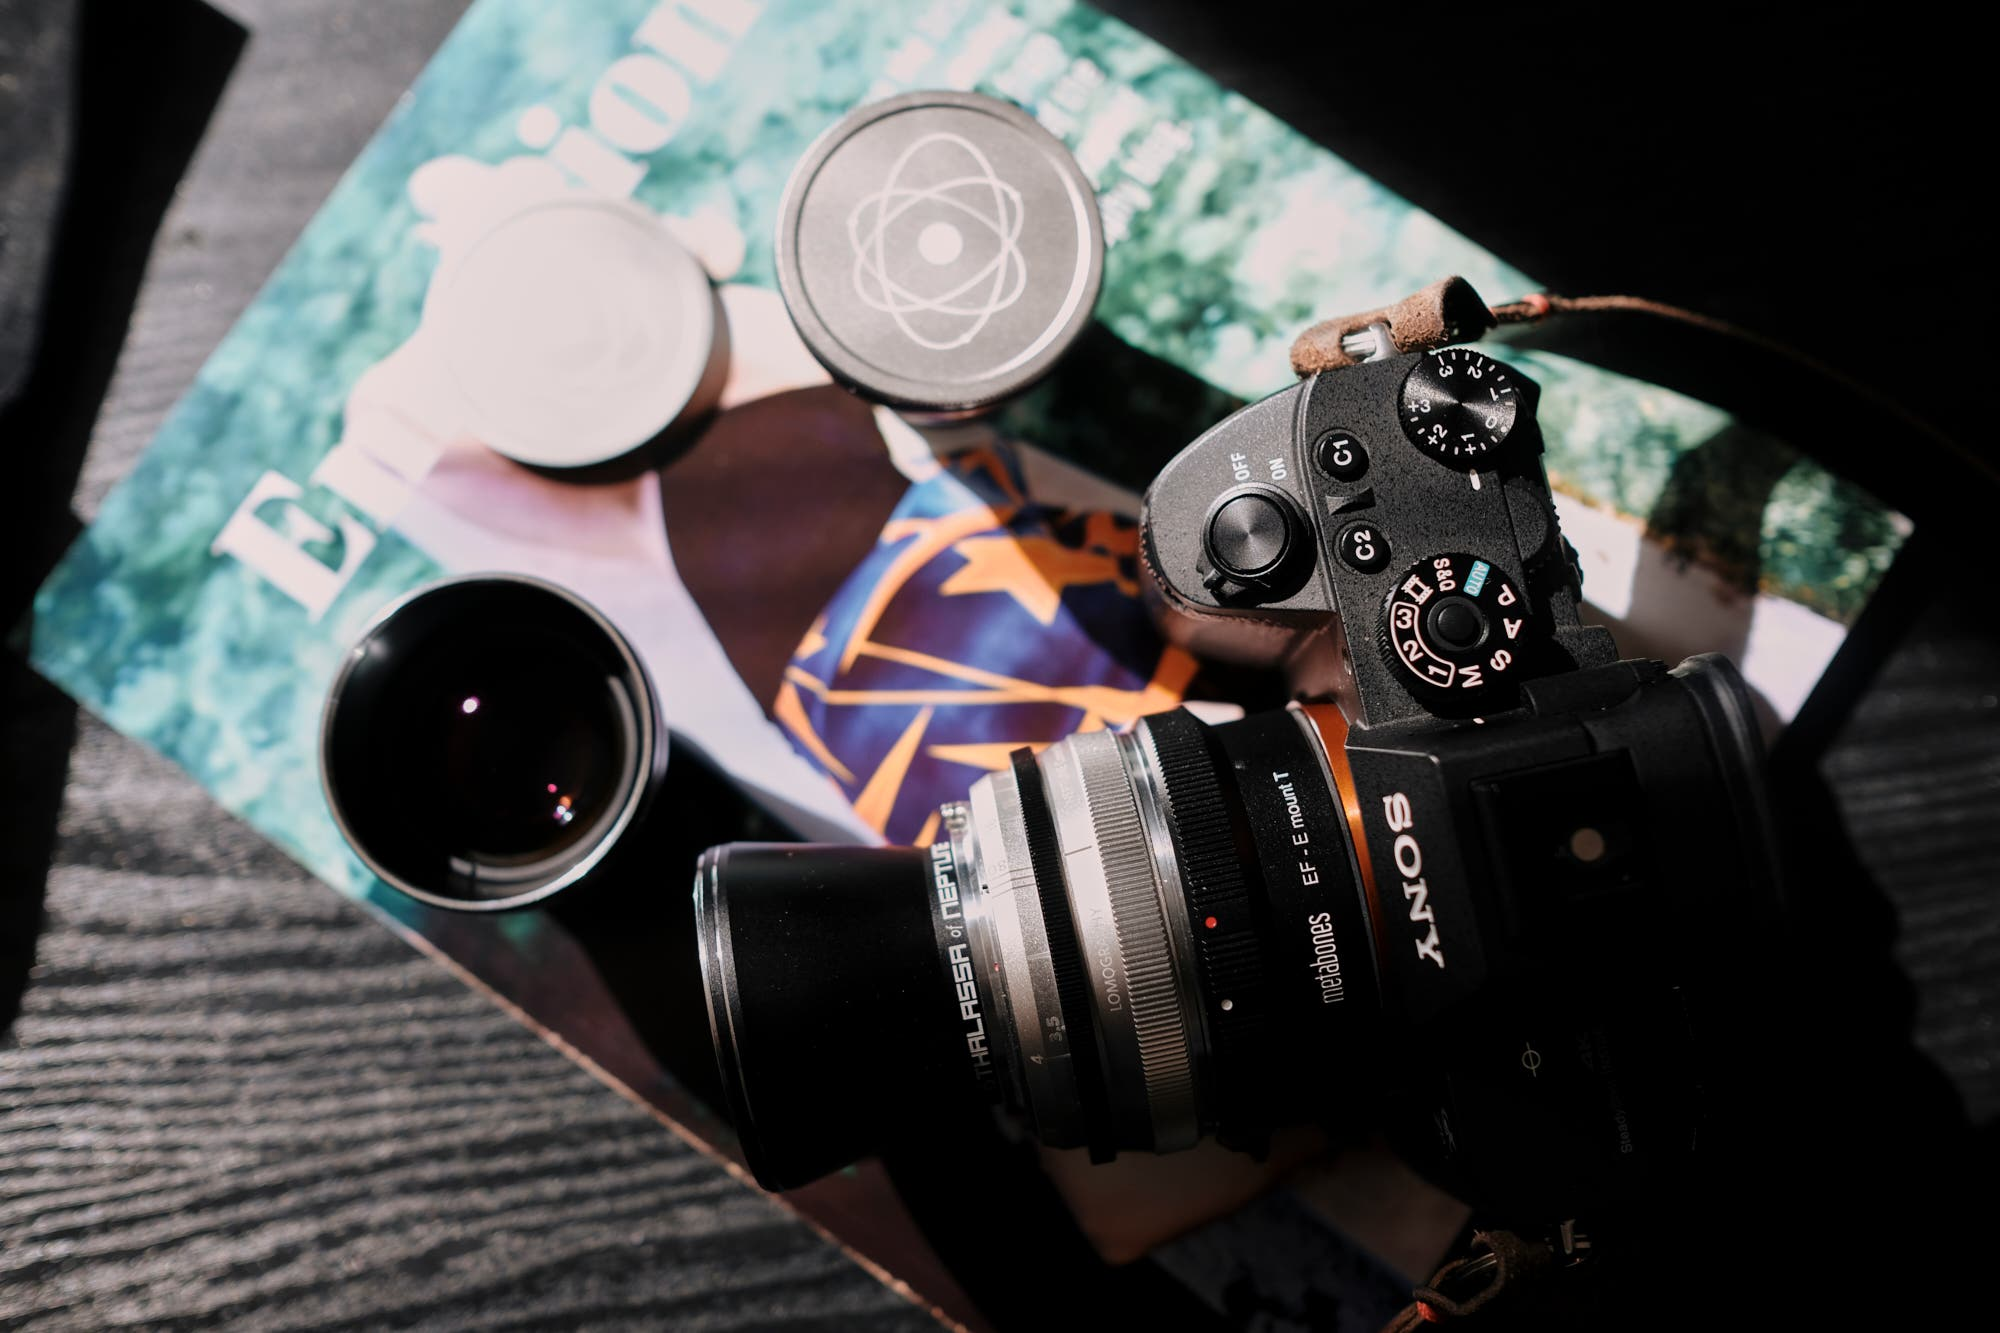 Review: Lomography Neptune Lenses (Canon EF Mount Adapted to Sony FE)